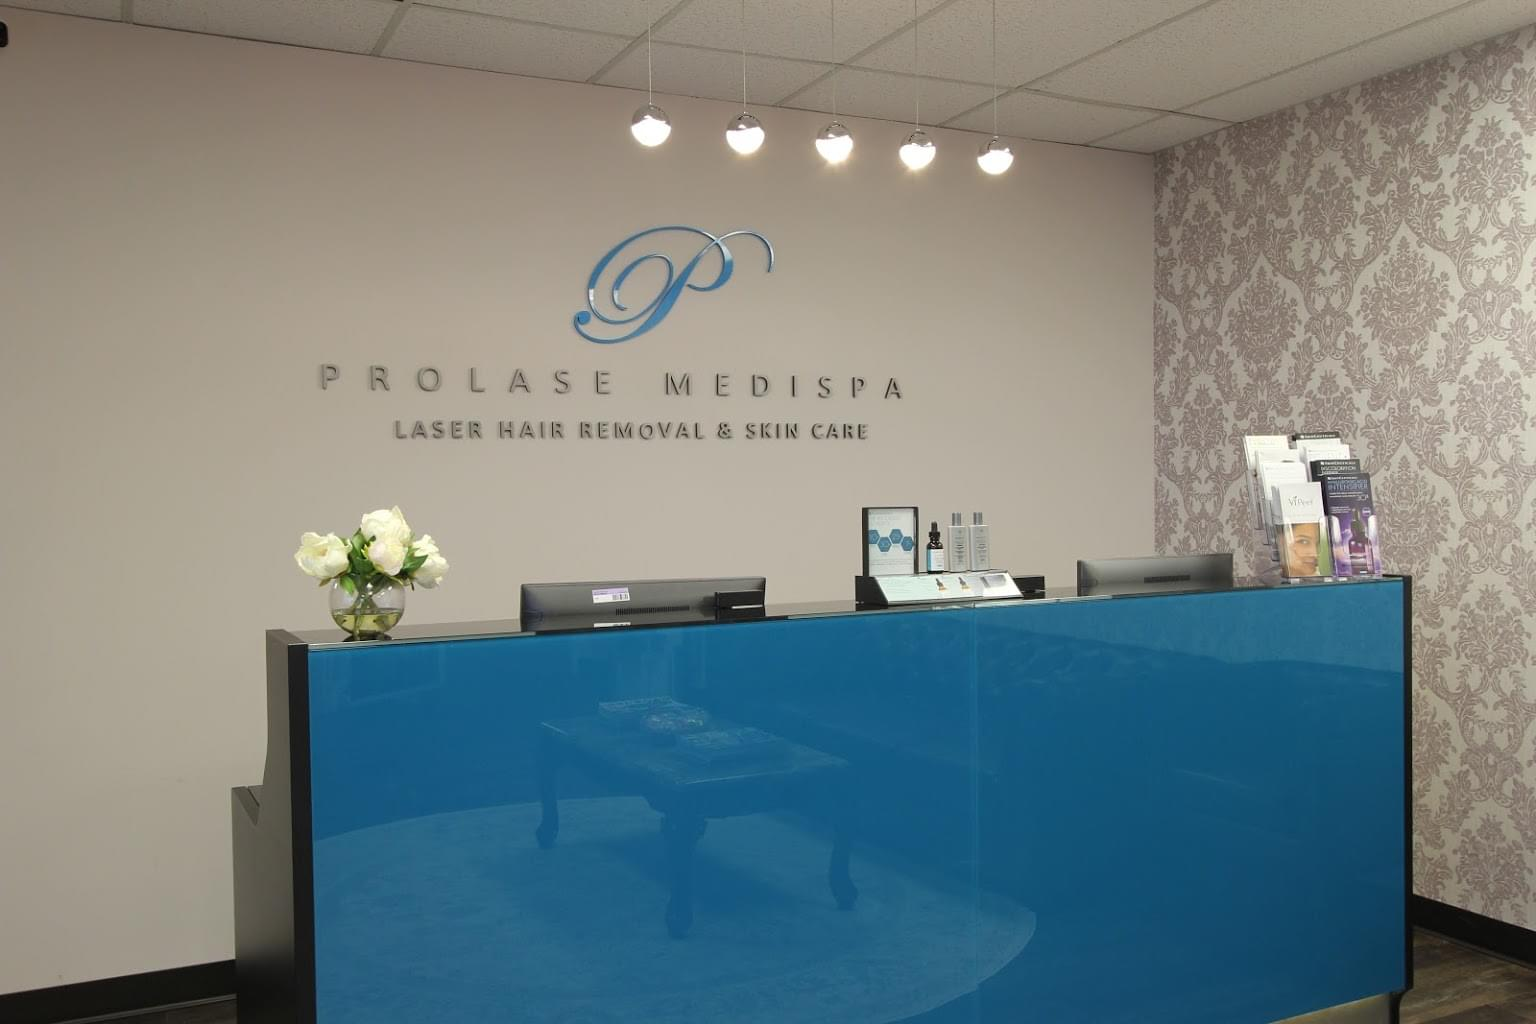 receptionist desk at Prolase Medispa medical spa in Fairfax, VA